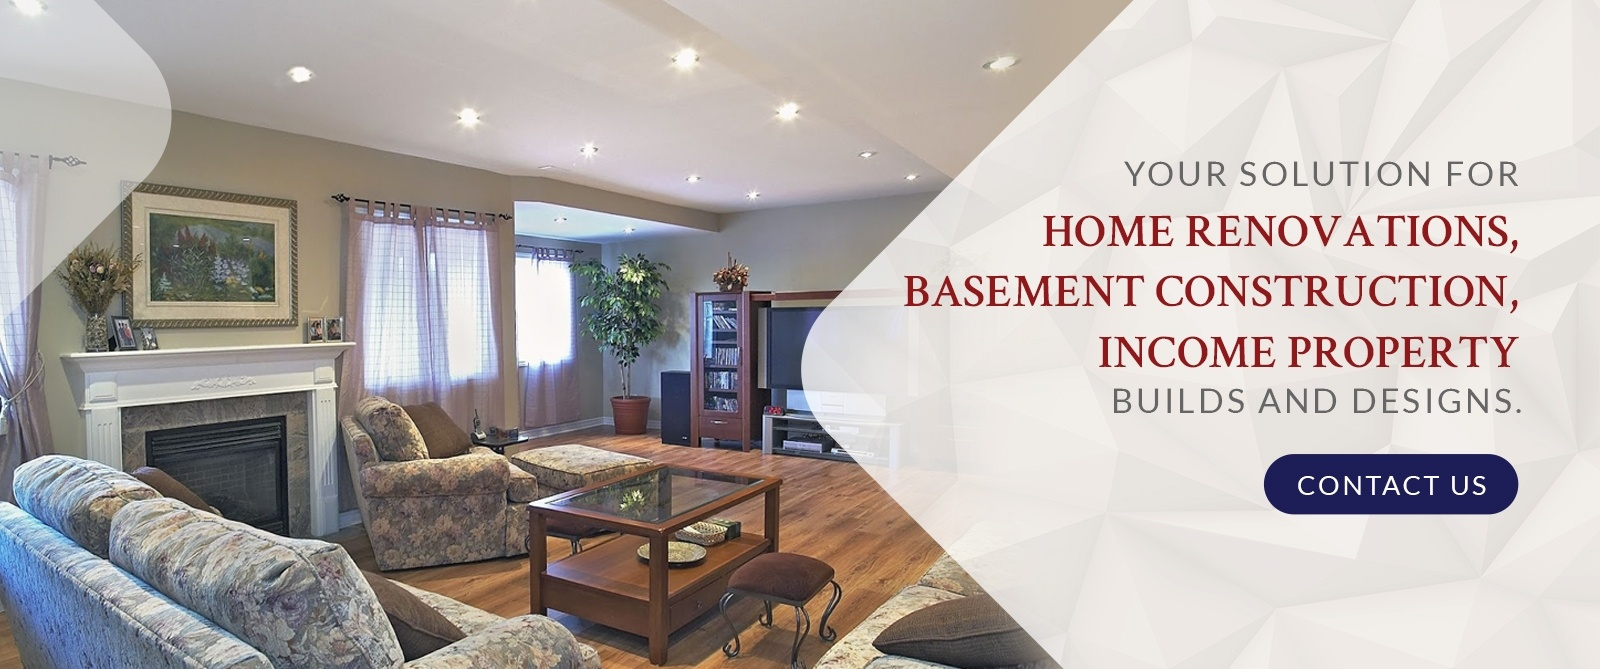 Home Renovation Services by Finished Basements in Toronto